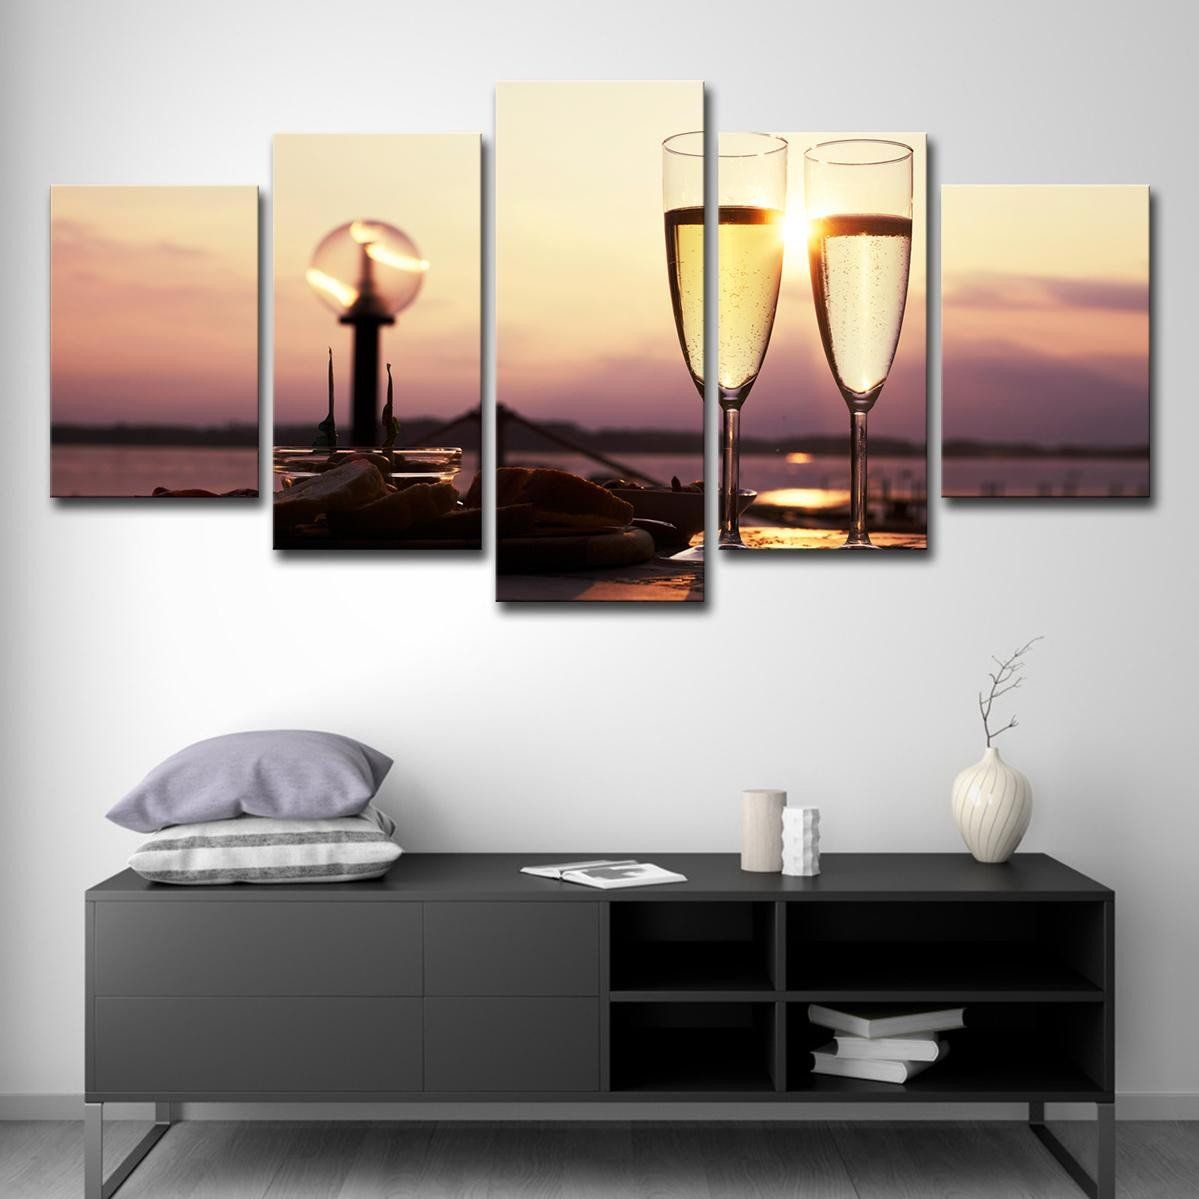 Wine Wall Art Decorating Dining Room Unique 5pcs Wall Art Canvas Painting Style Wall For Living Room 5 Panel Wine And Sunrise Cuadros Modern D Ruang Makan Dekor